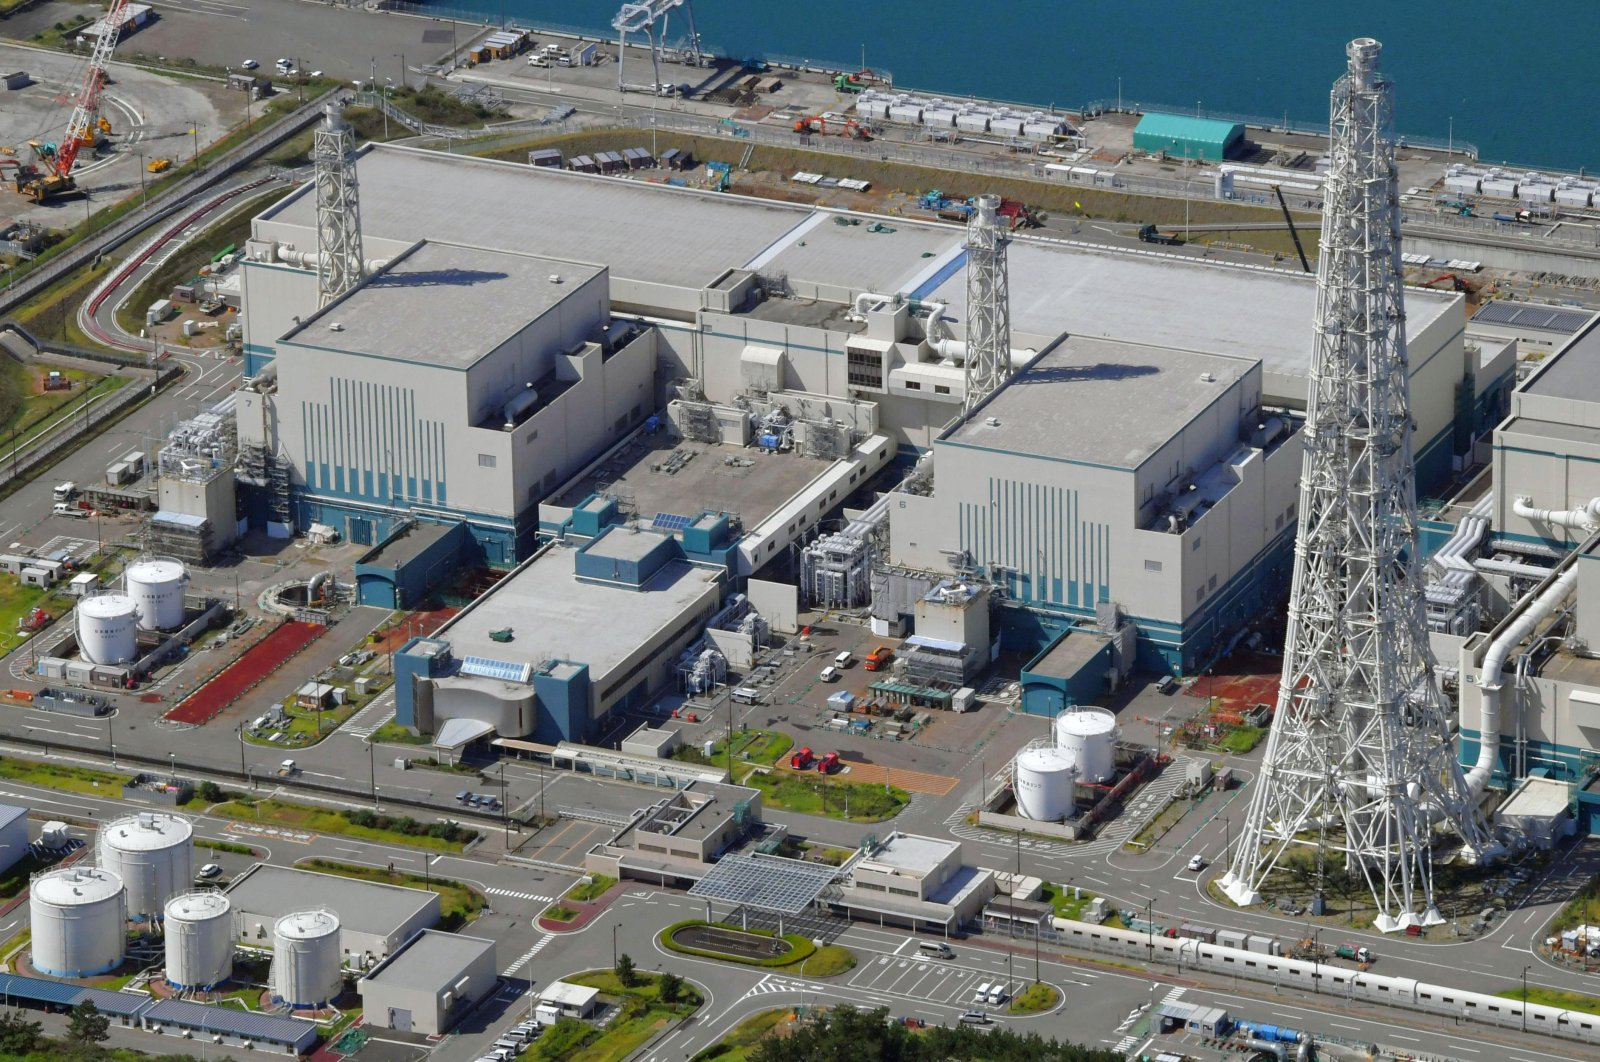 An aerial view shows the reactors of No. 6 (R) and No. 7 (L) at Kashiwazaki-Kariwa nuclear power plant, on the northern Japanese coast in Niigata prefecture, Japan, Sept. 30, 2017. (Kyodo News via AP)